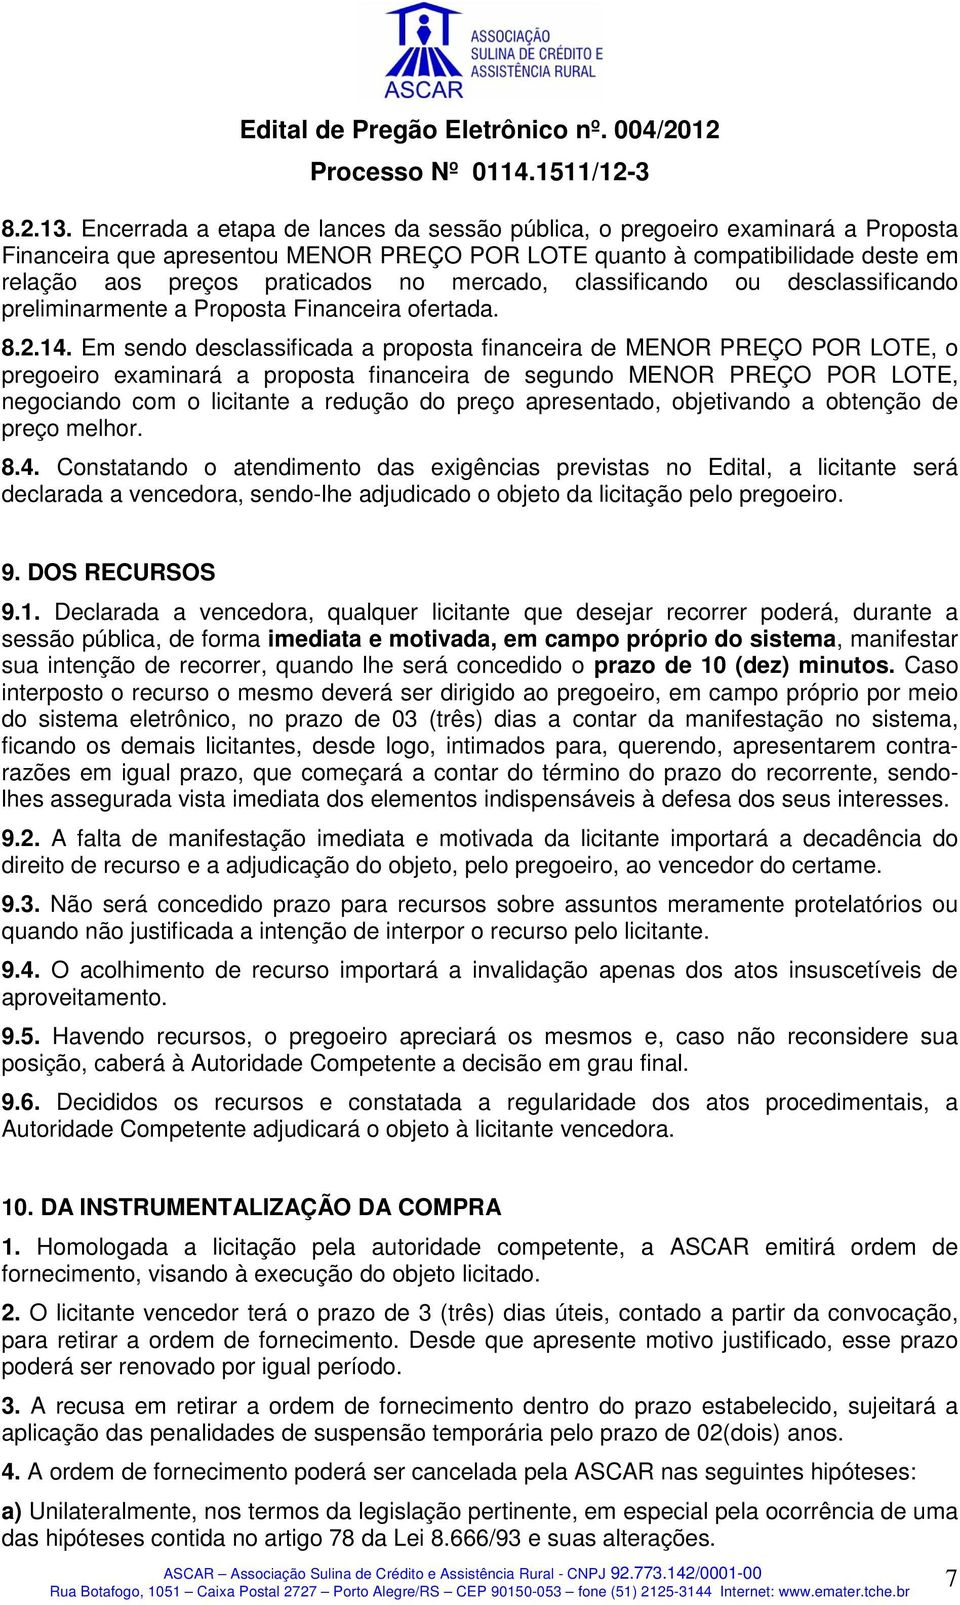 mercado, classificando ou desclassificando preliminarmente a Proposta Financeira ofertada. 8.2.14.